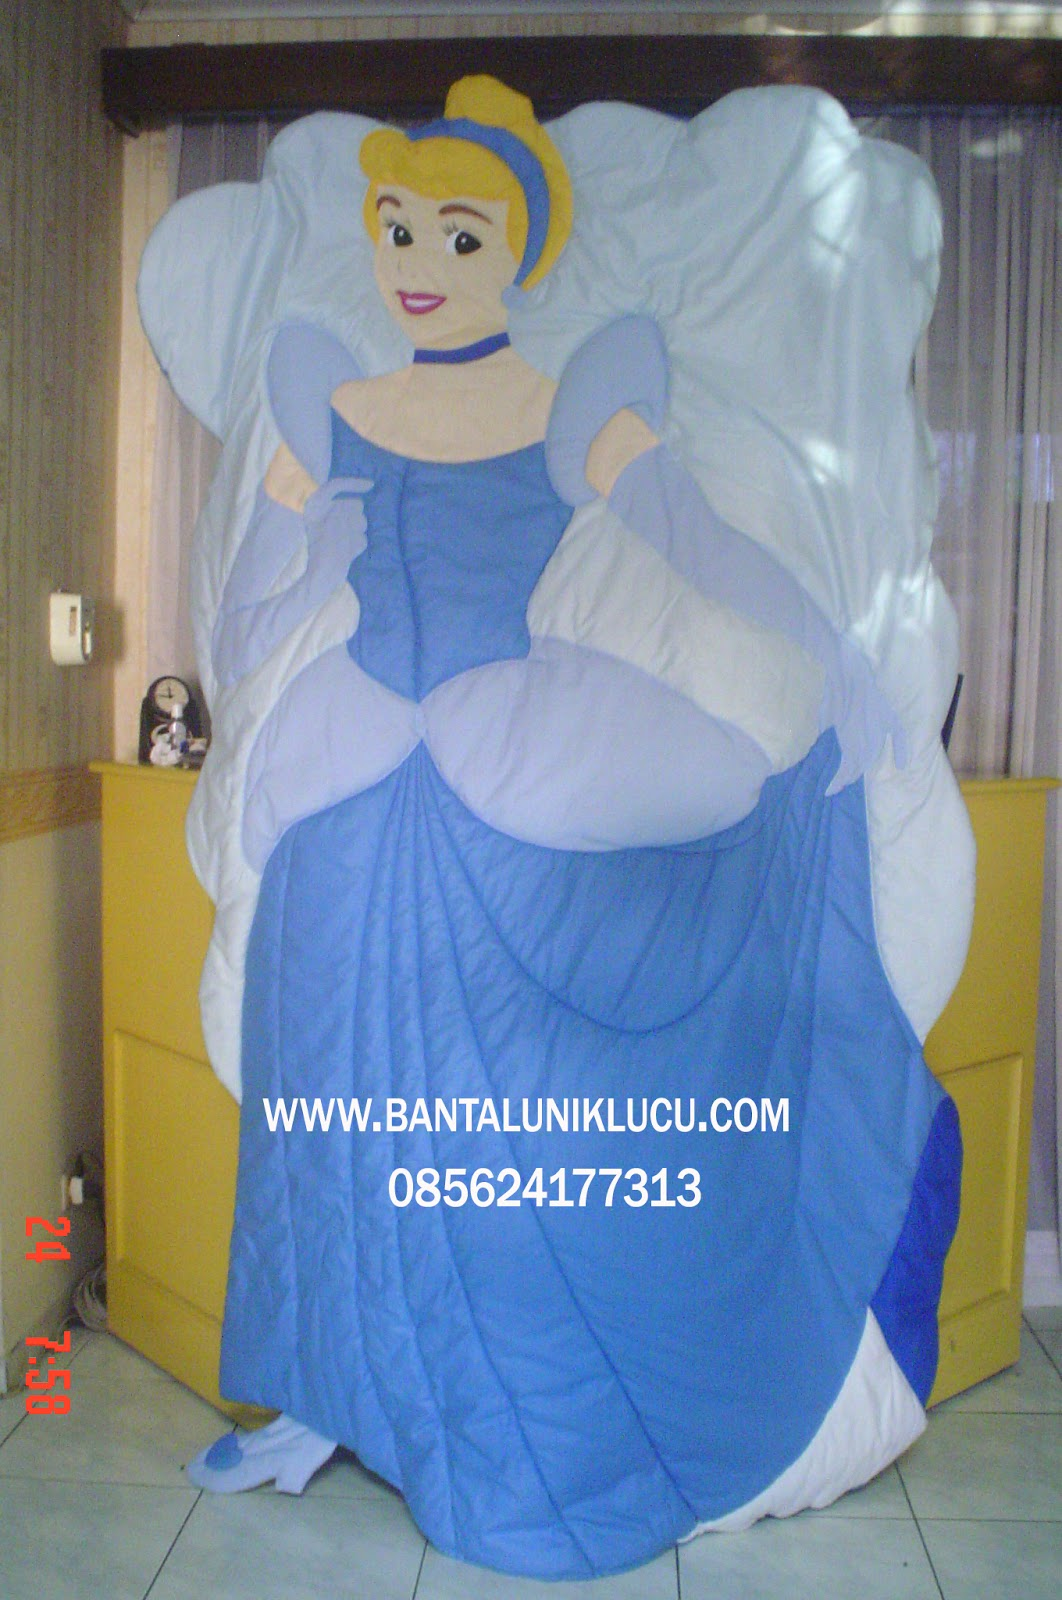 Bed Cover Unik Cinderella Bantal Unik Lucu